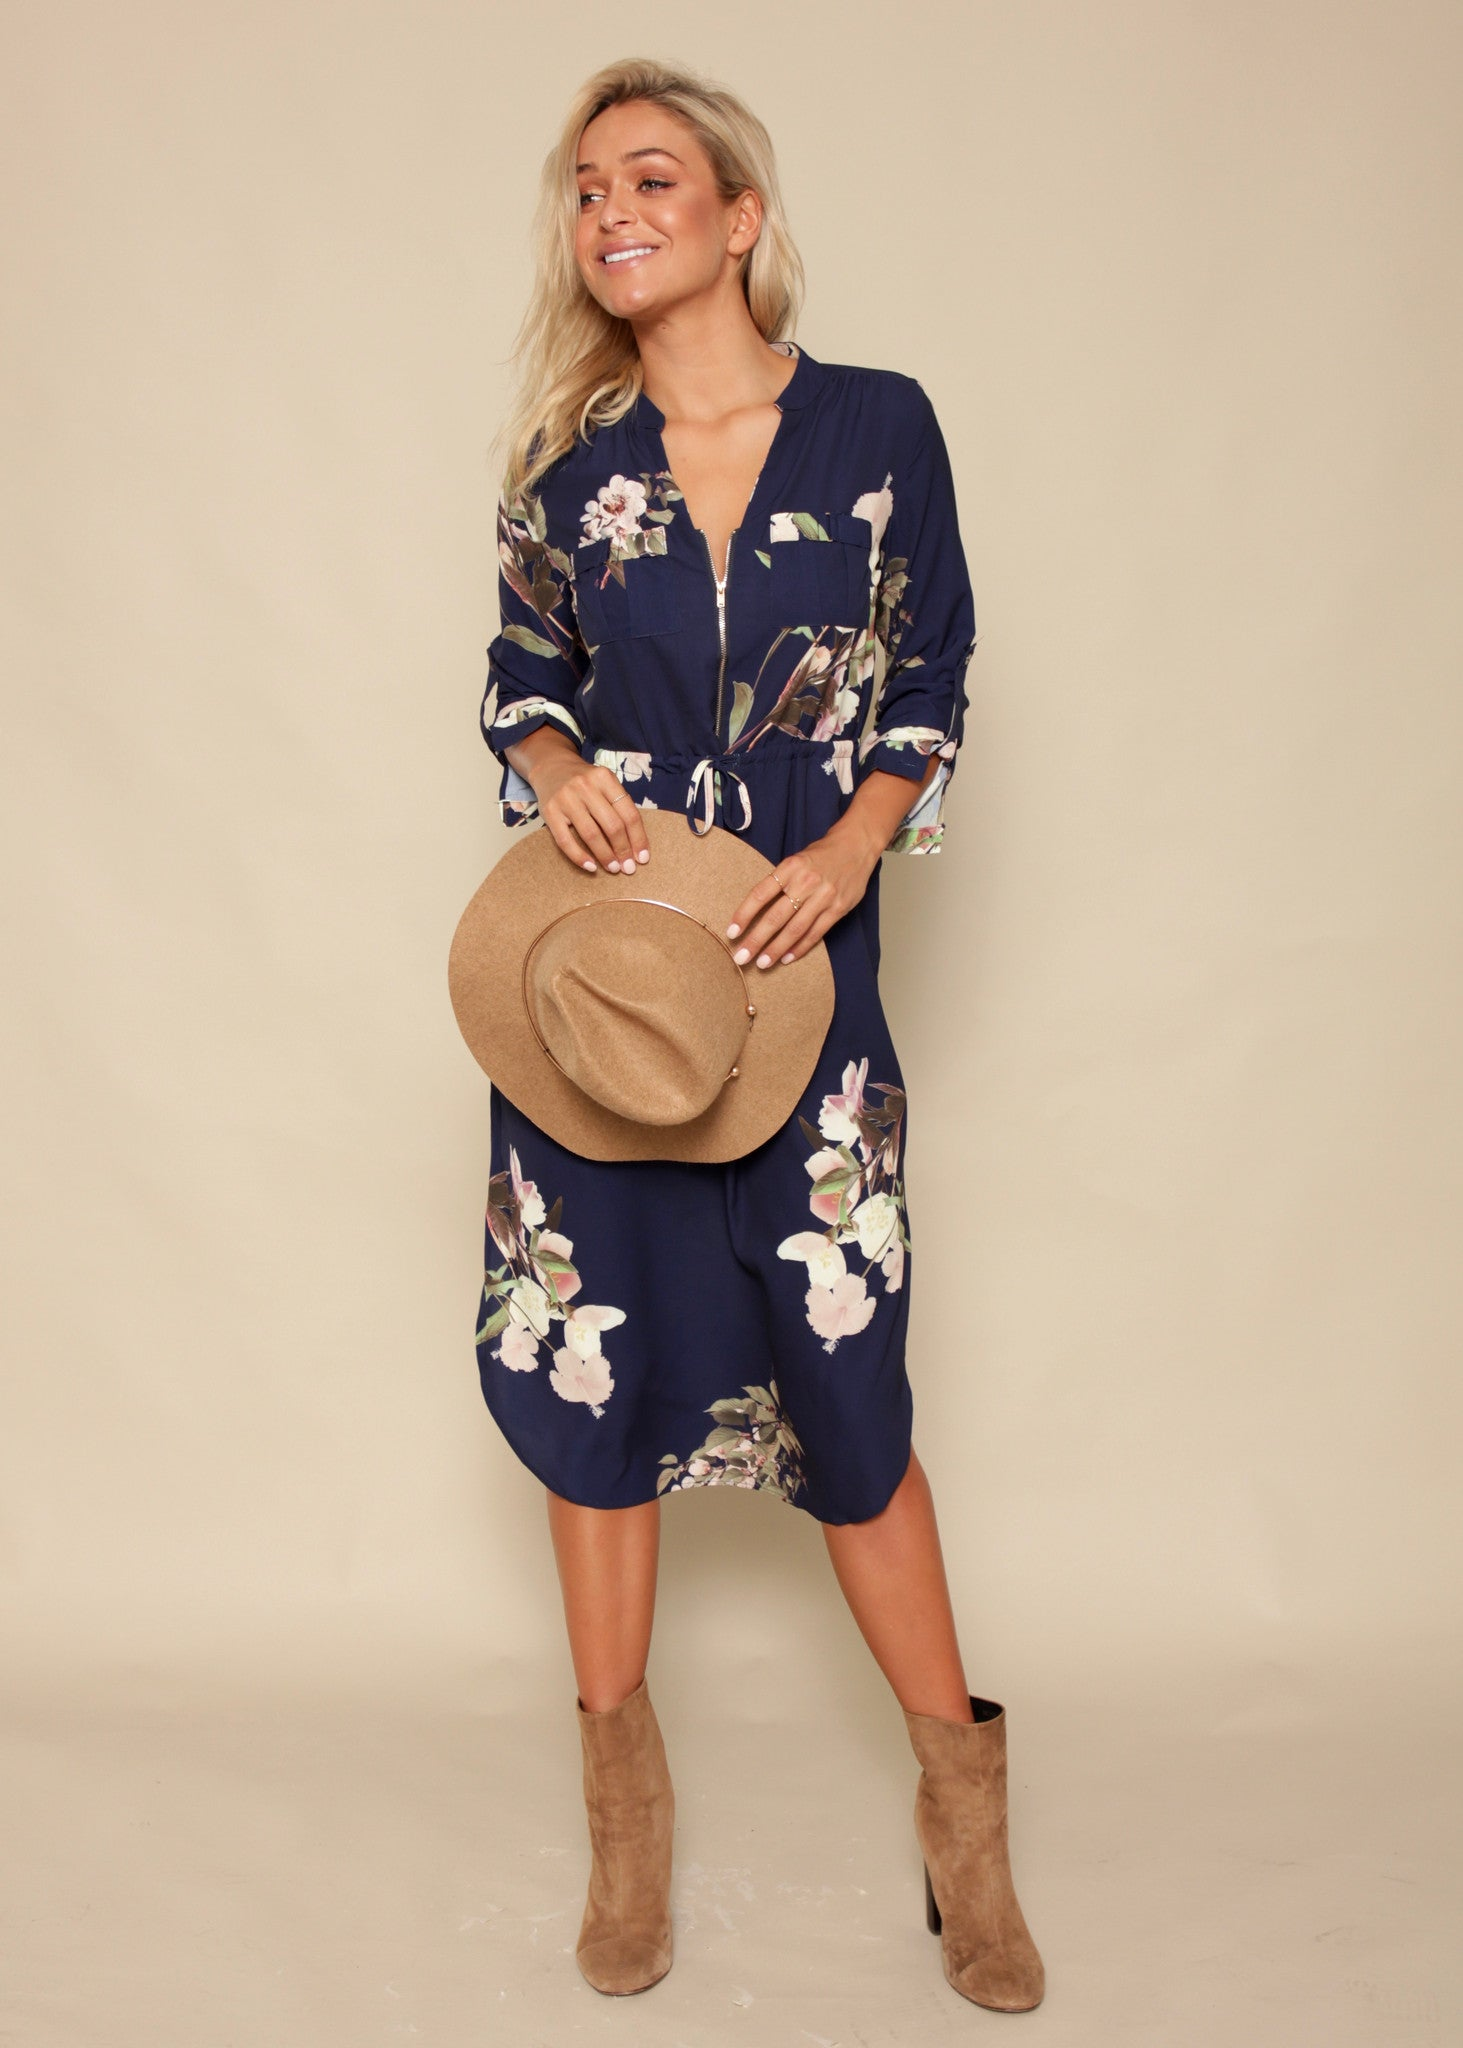 Low Lights Tunic Dress - Navy Floral